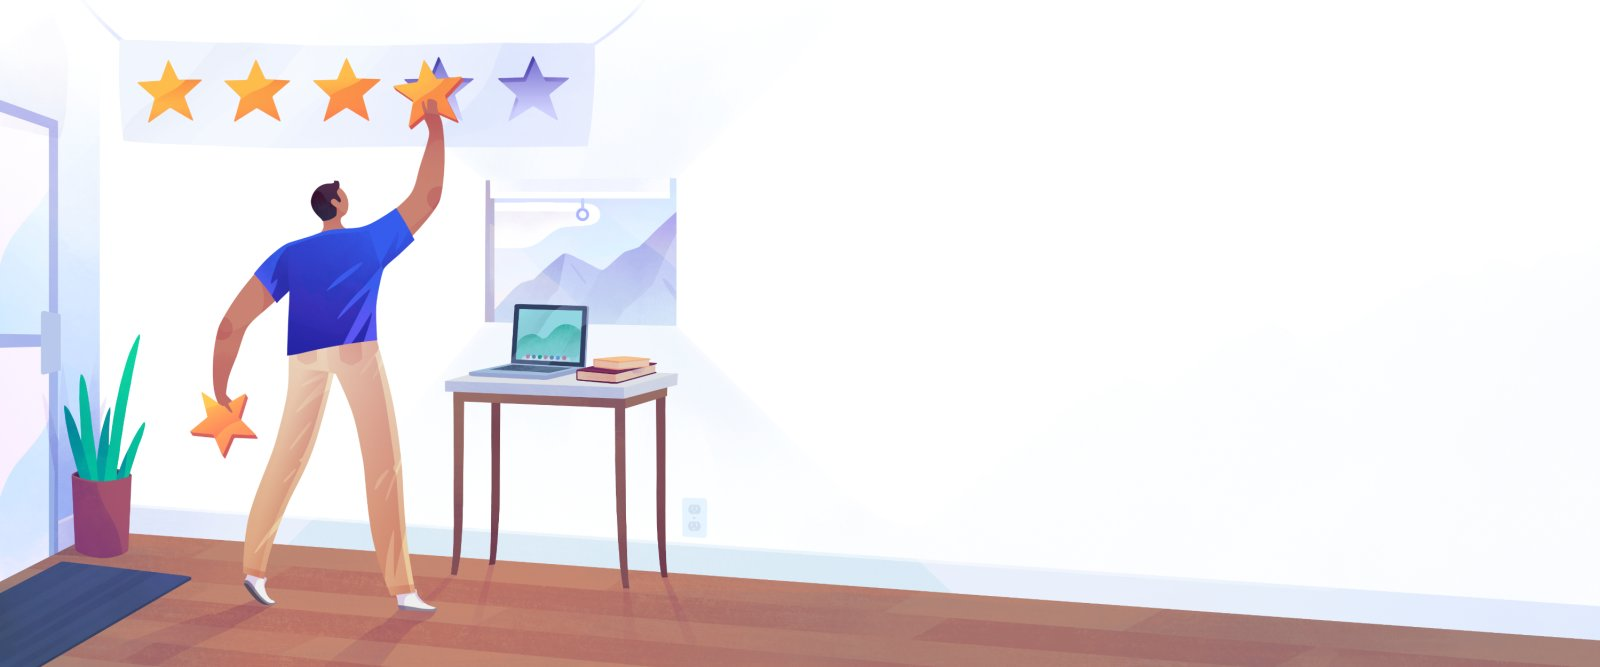 Man in workspace adding stars to wall.